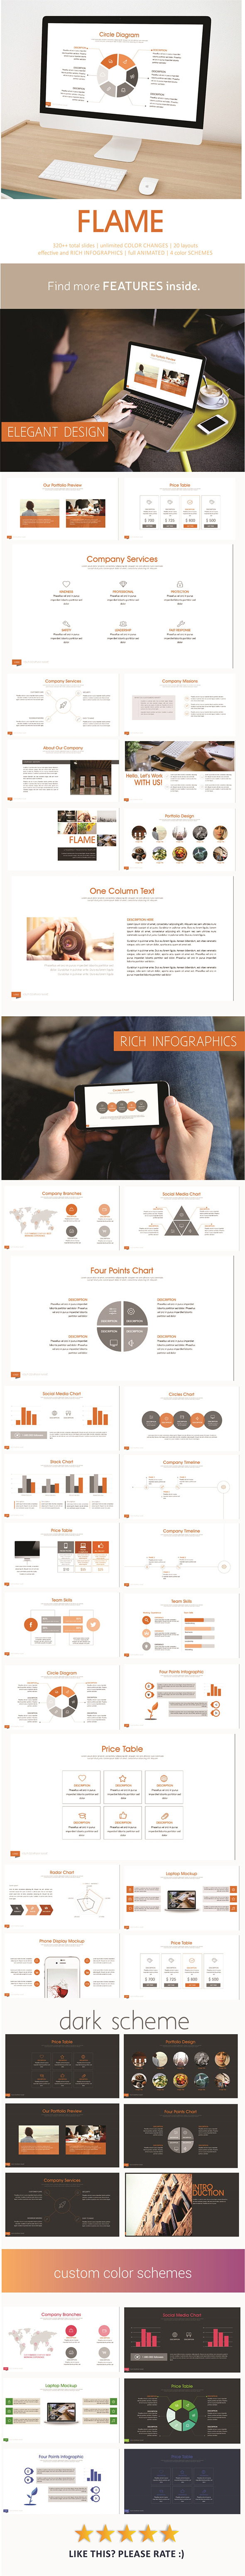 Flame PowerPoint Template